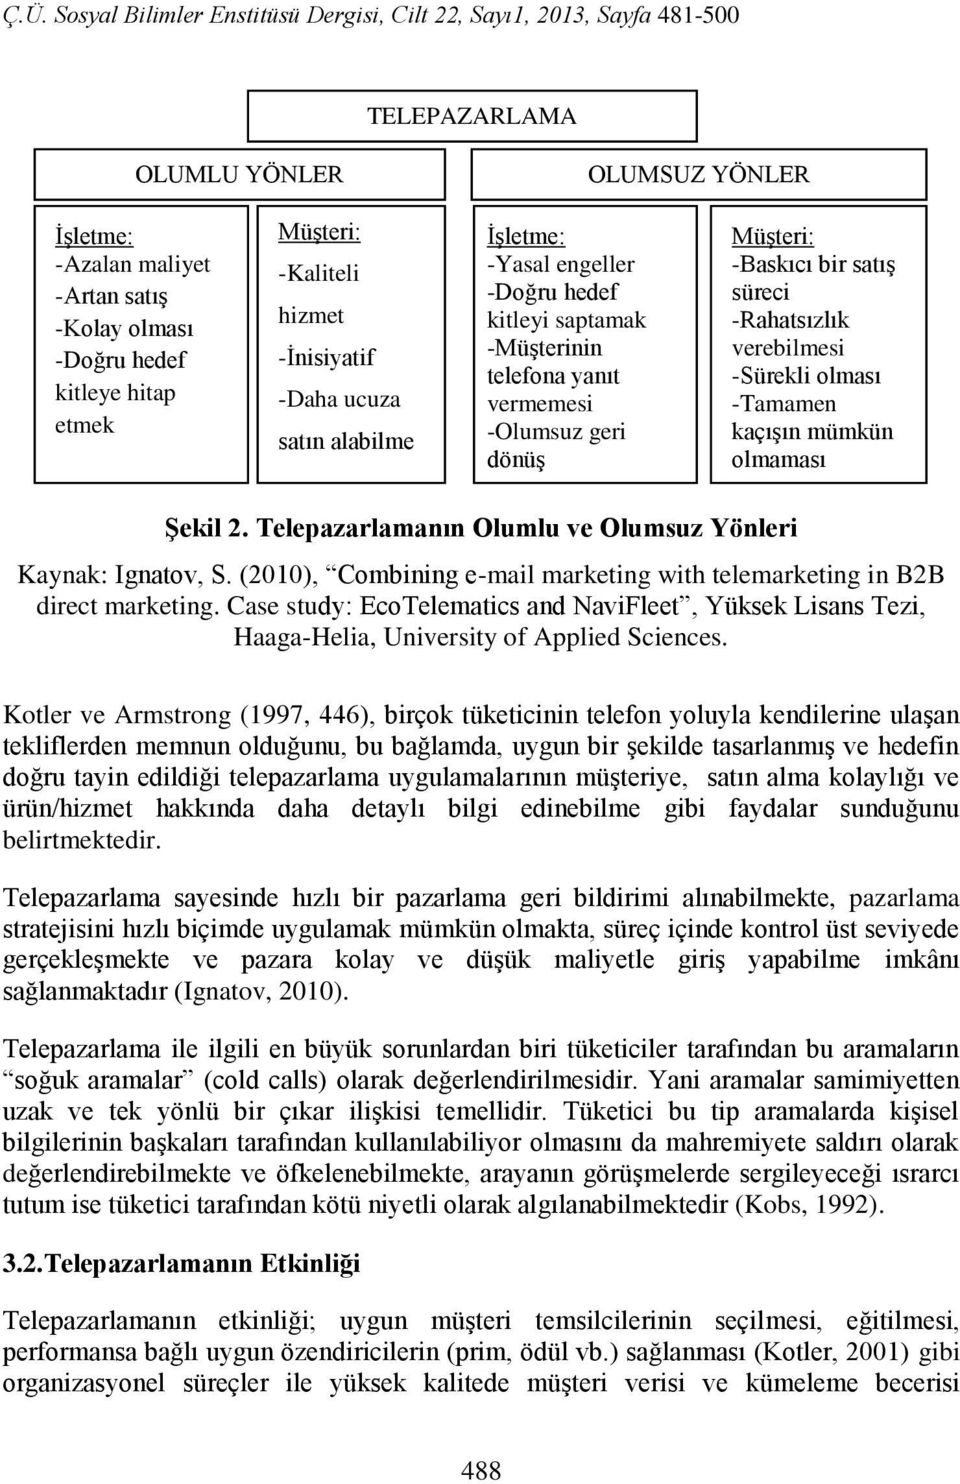 kaçışın mümkün olmaması ġekil 2. Telepazarlamanın Olumlu ve Olumsuz Yönleri Kaynak: Ignatov, S. (2010), Combining e-mail marketing with telemarketing in B2B direct marketing.